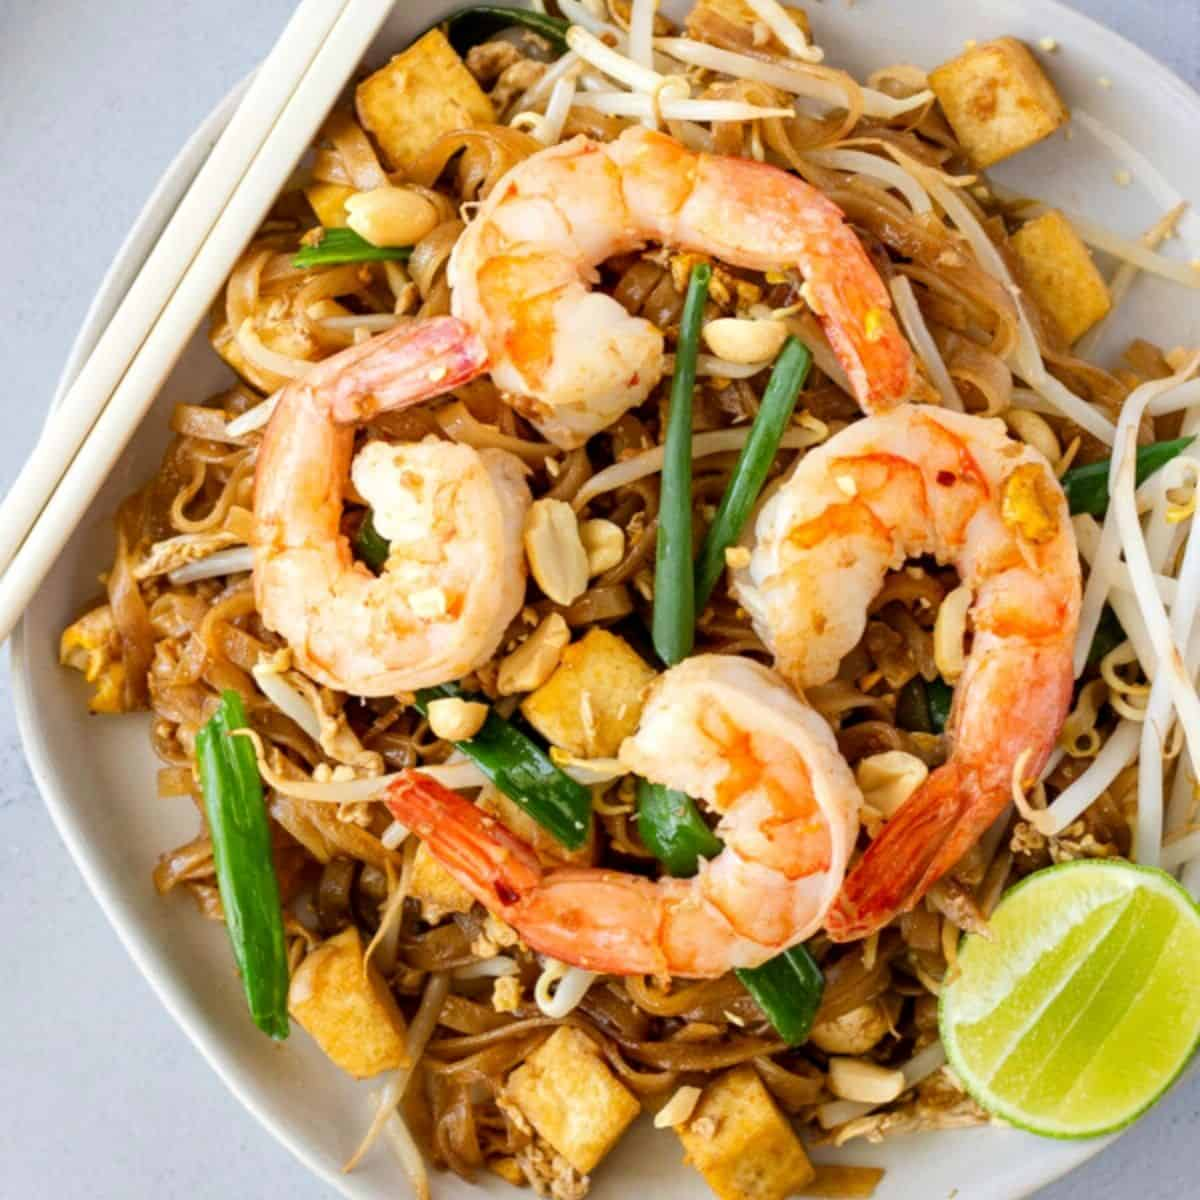 Overhead view of pad thai with shrimp on white plate with chopsticks on the side.